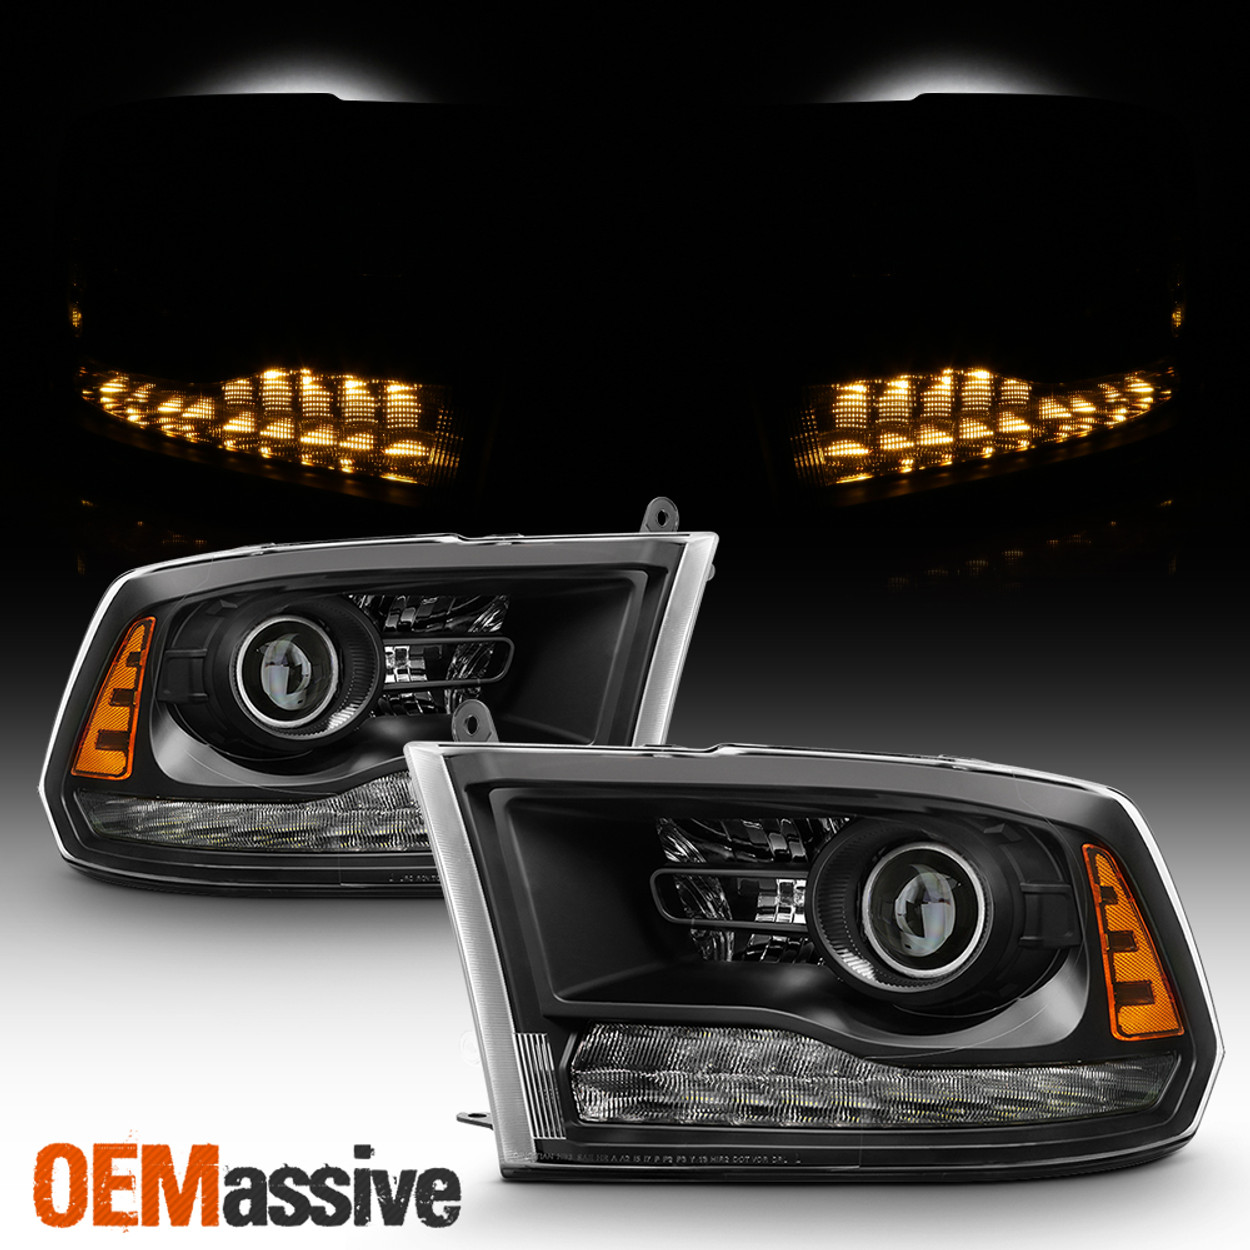 2013 2018 Dodge Ram 1500 2500 3500 Headlights Factory Projector Style Only Oemassive